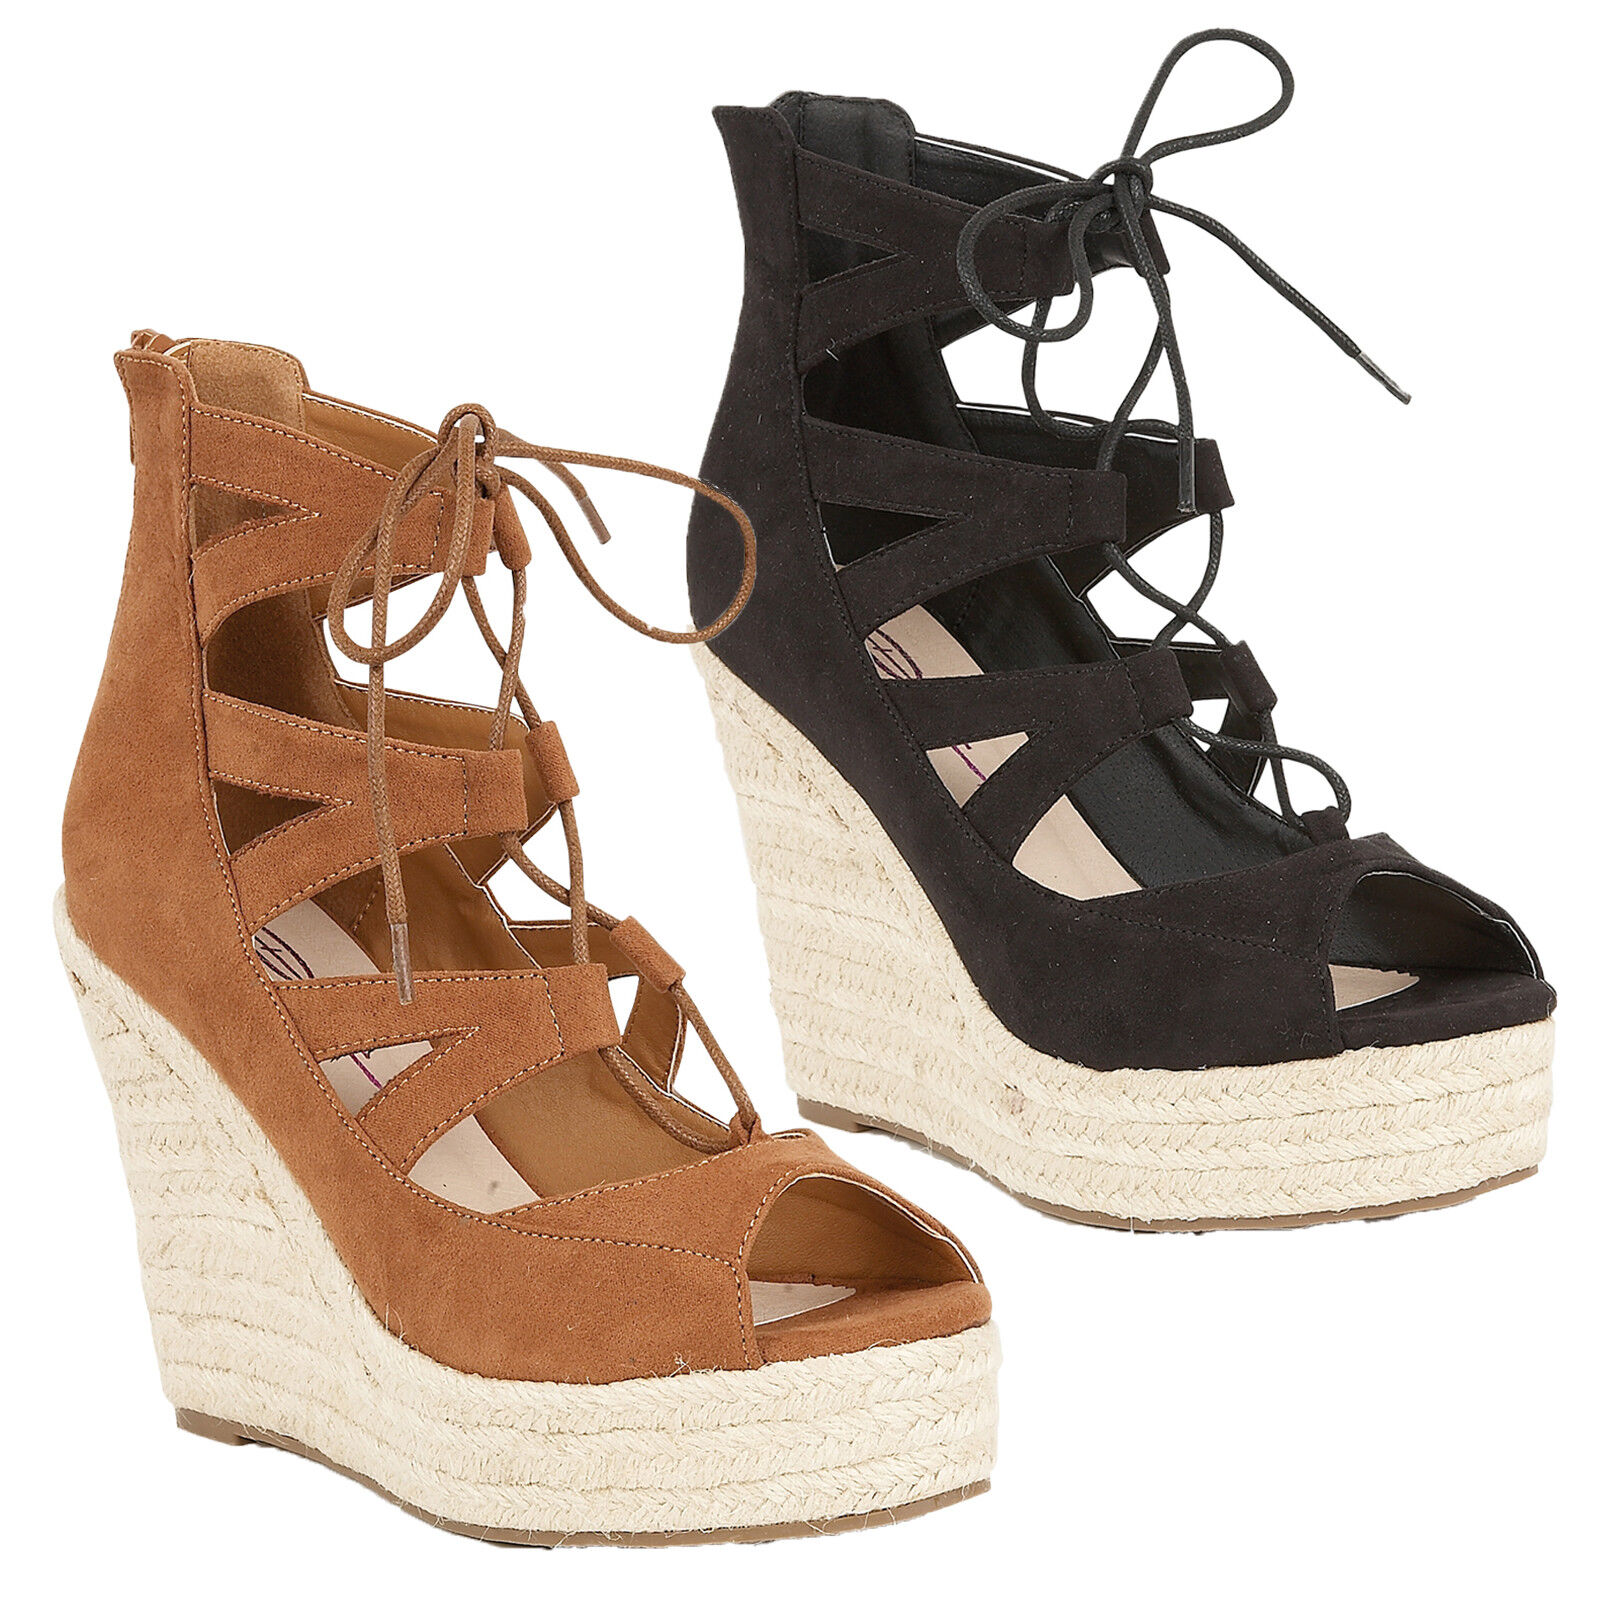 Dolcis Hilary Womens Ghillie Lace Up High Platform Wedge Heel Rope Sandals shoes